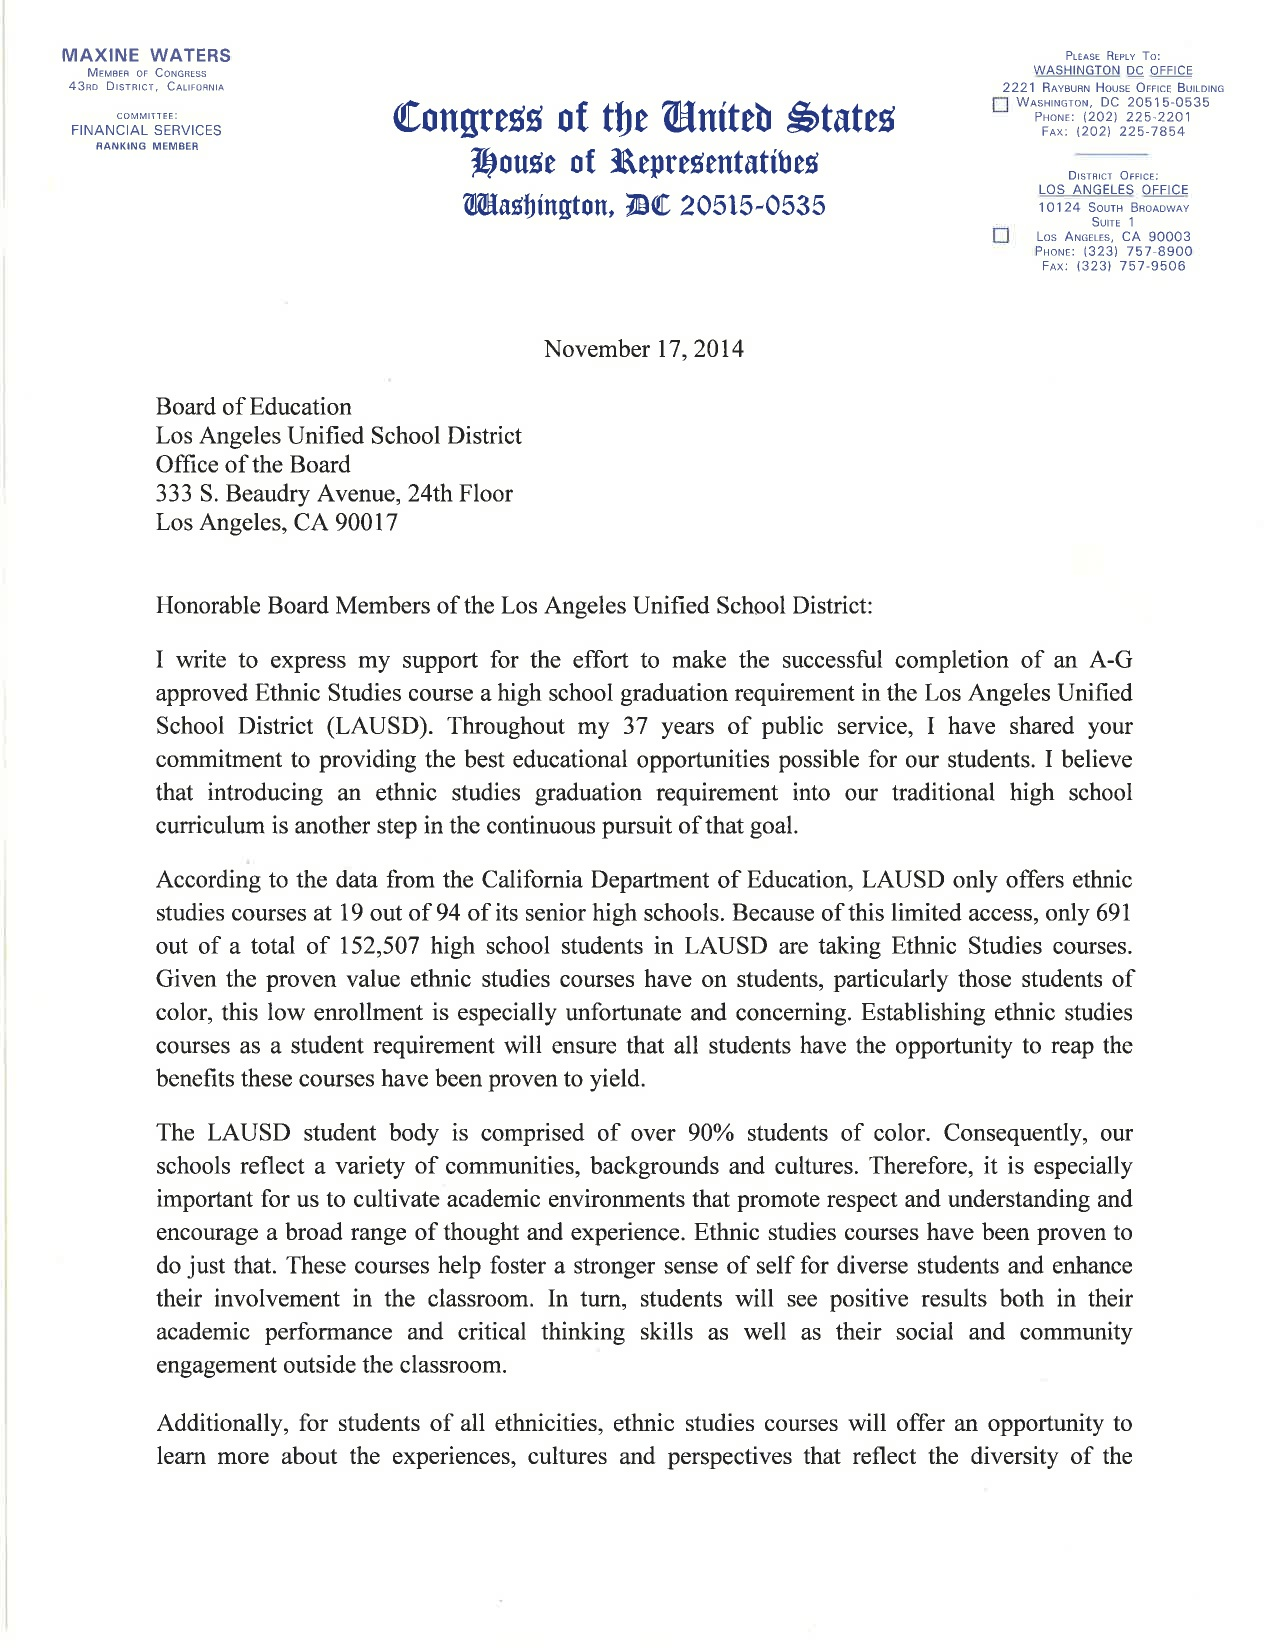 11-17-2014_Rep_Maxine_Watters_Letter_to_LAUSD__re_Ethnic_Studies_Requirement_p1.jpg